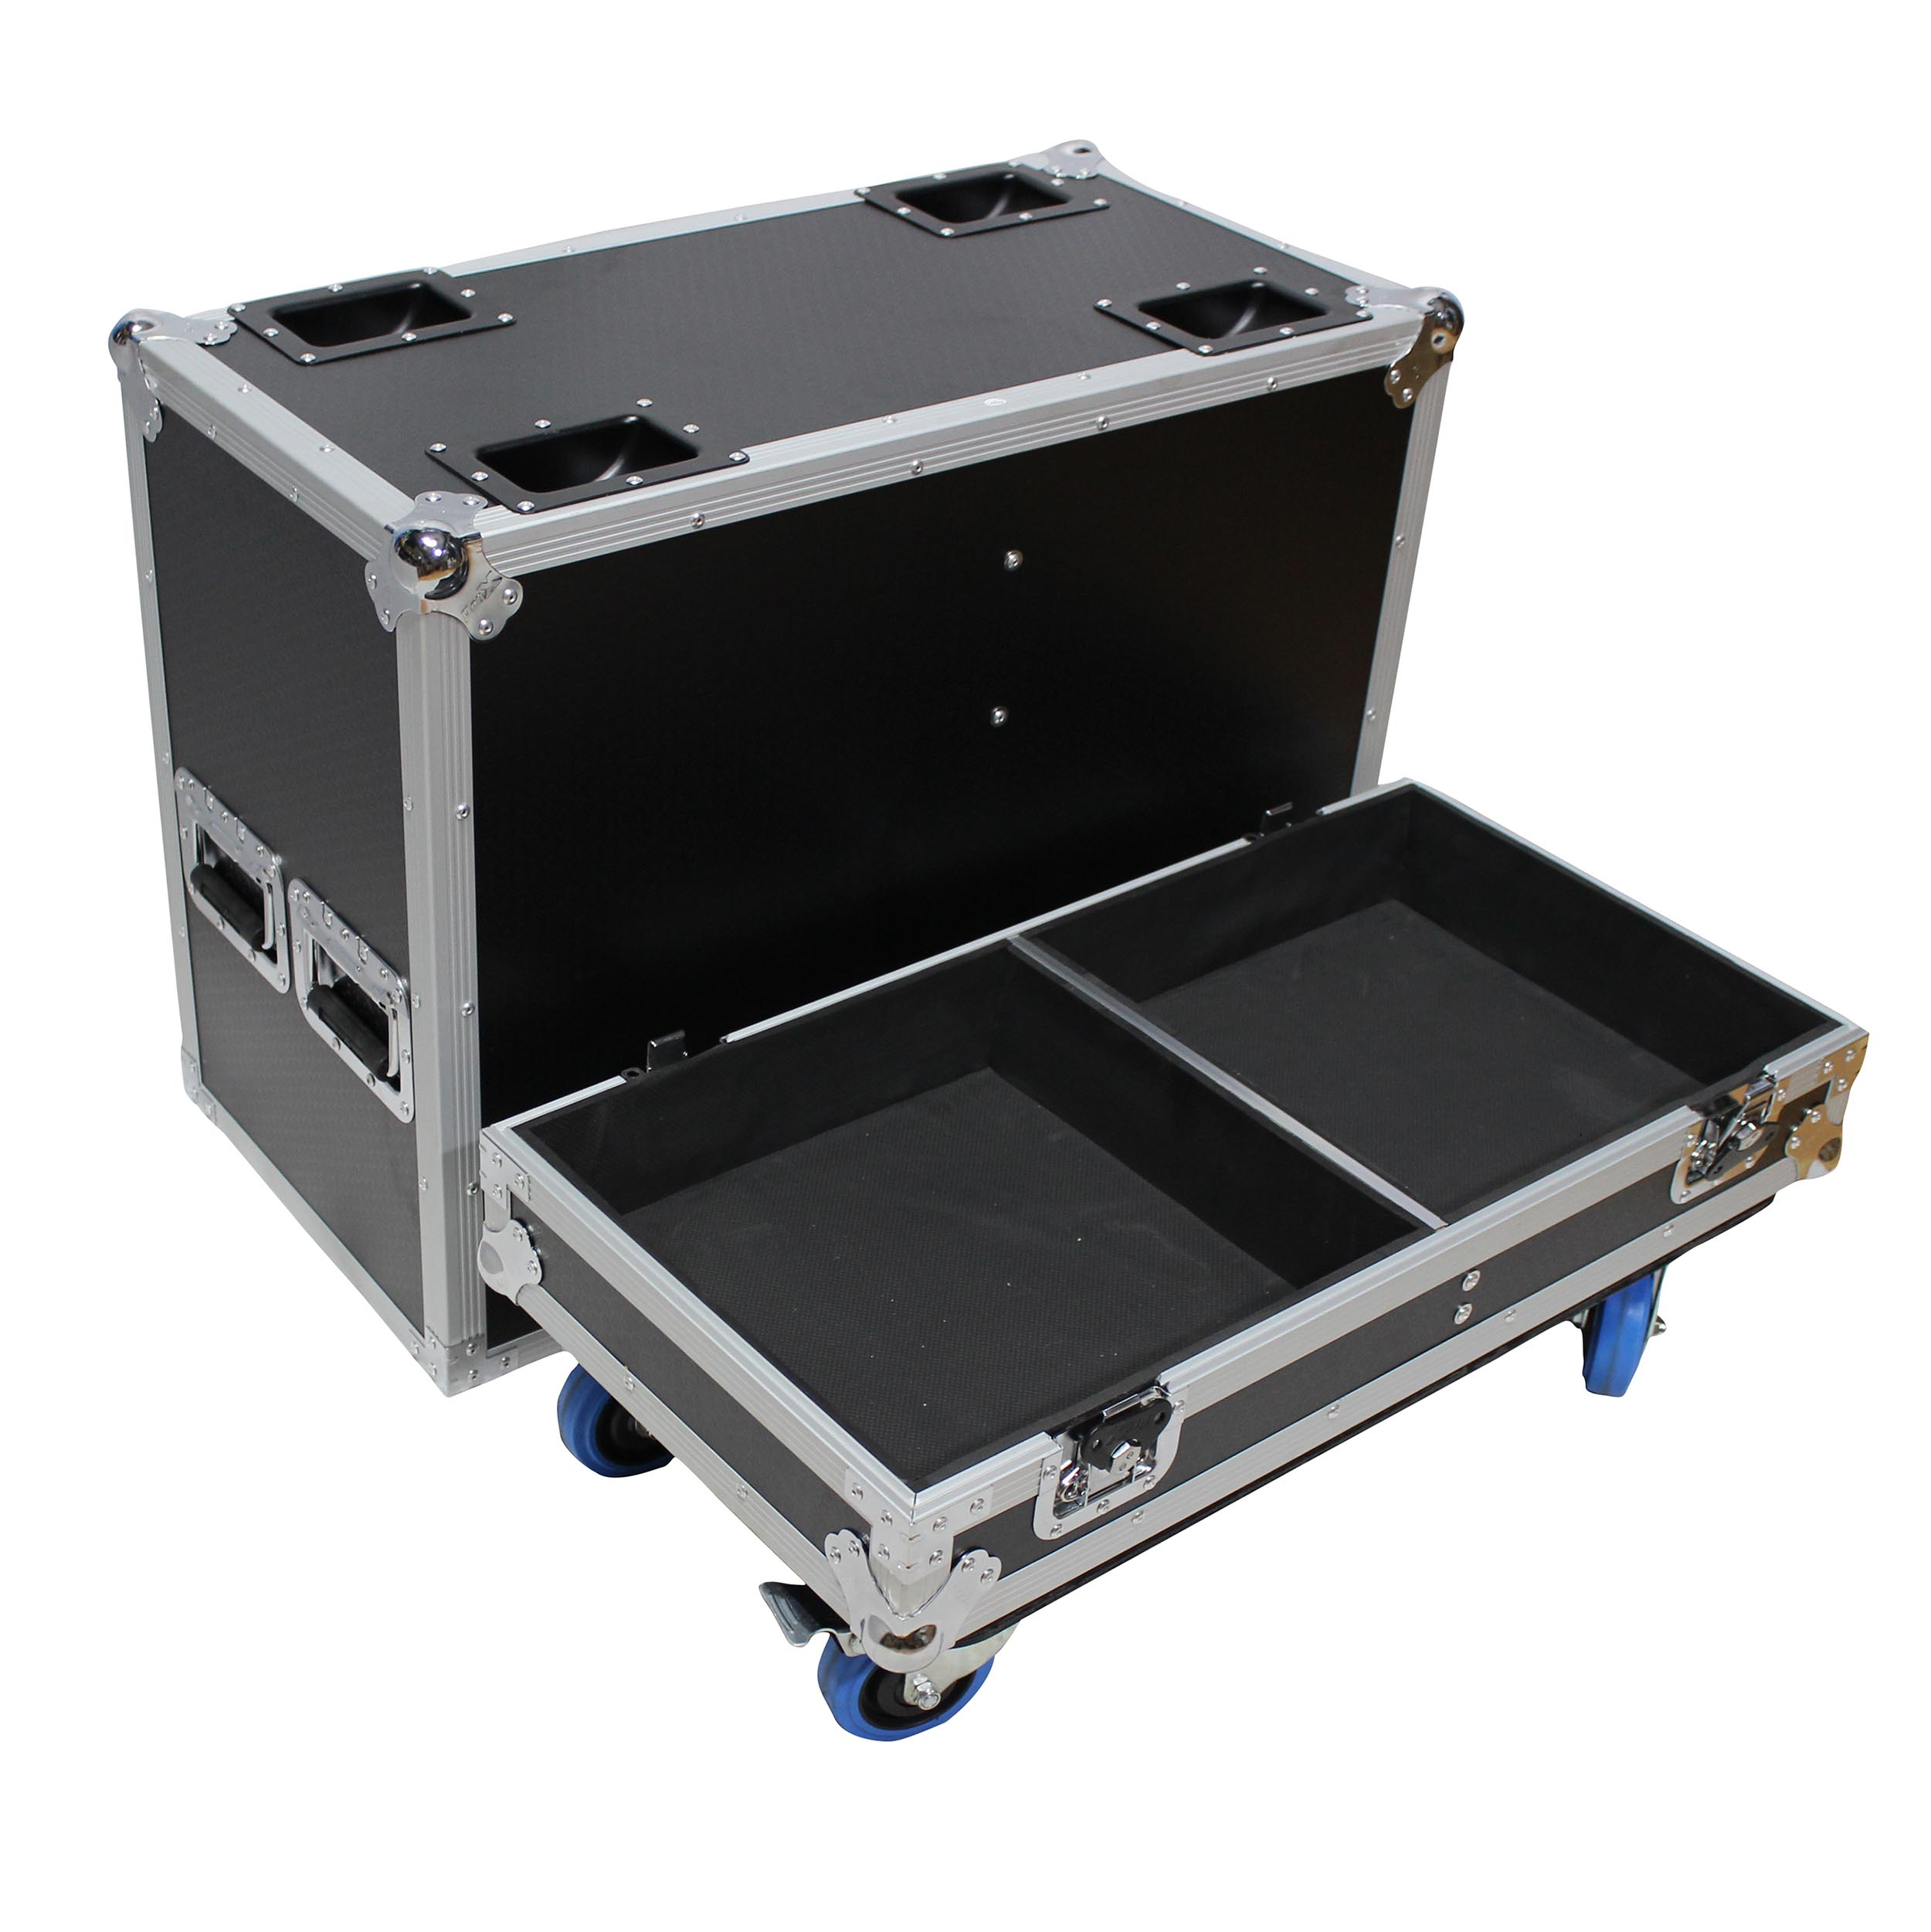 Fits 2x RCF ART 312-A MKIII Two-Way Speaker Flight Case with